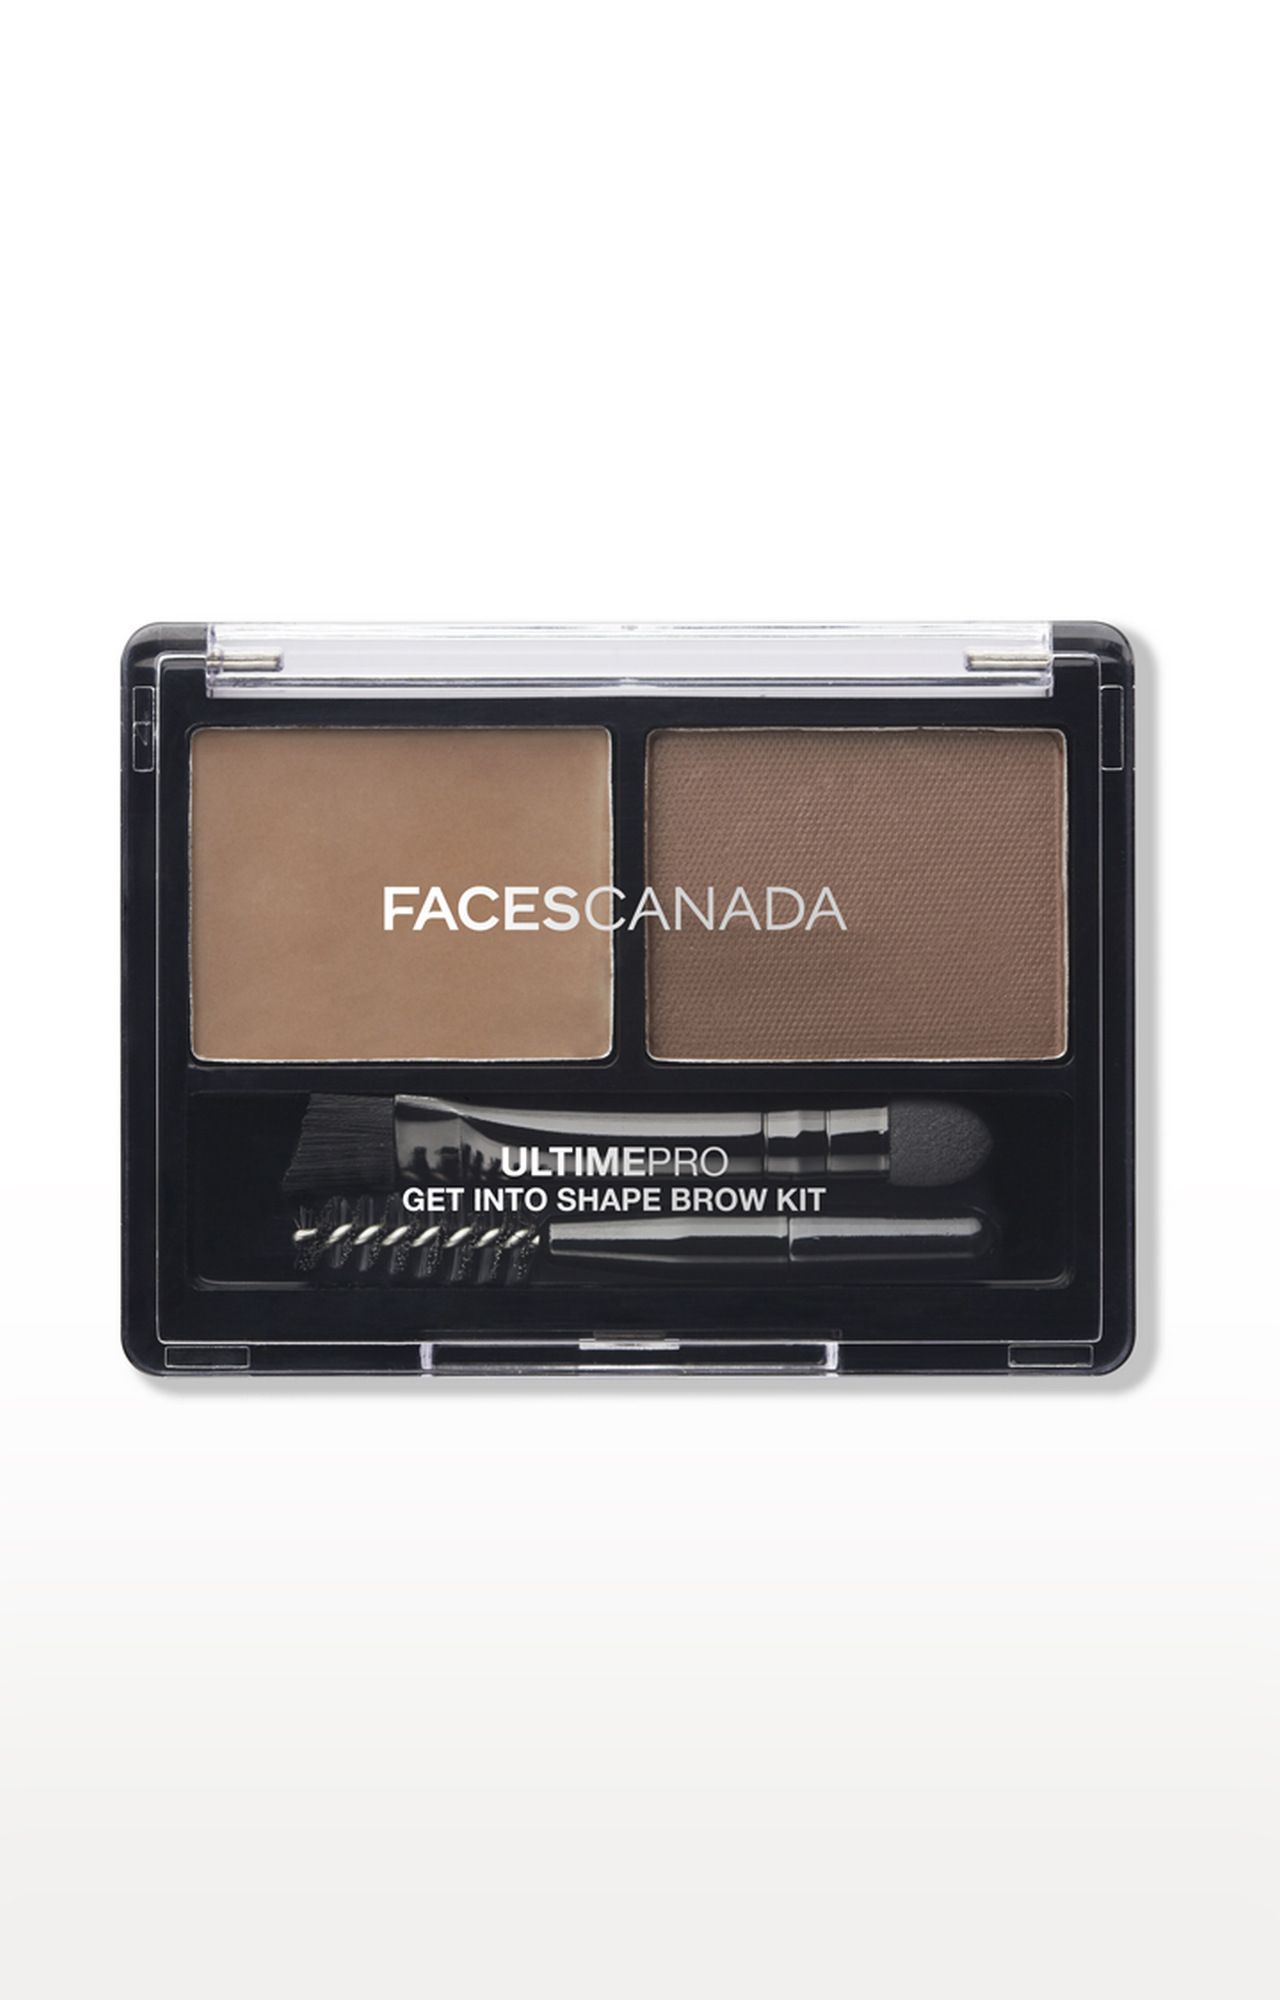 Faces Canada | Ultime Pro Brow Shaping Kit (4 GM)